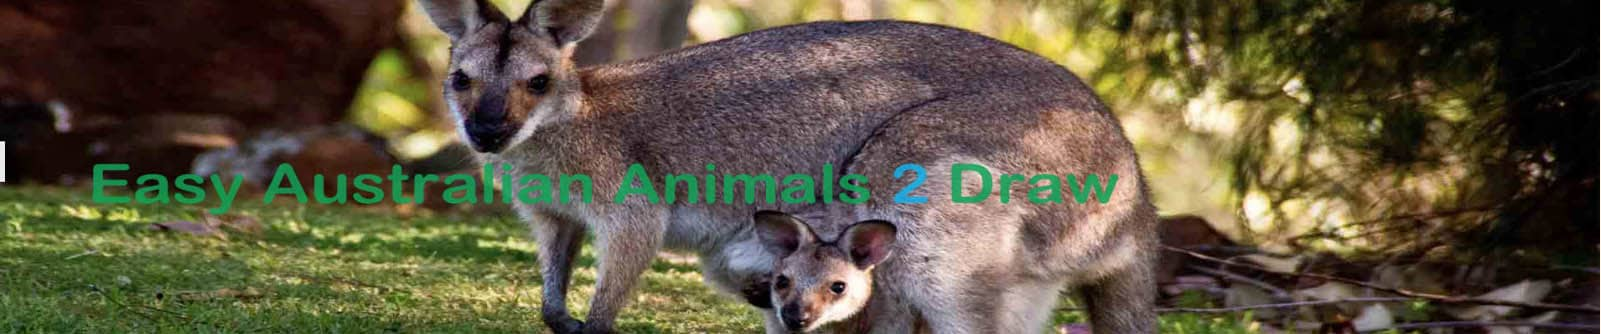 How to draw Australian animals